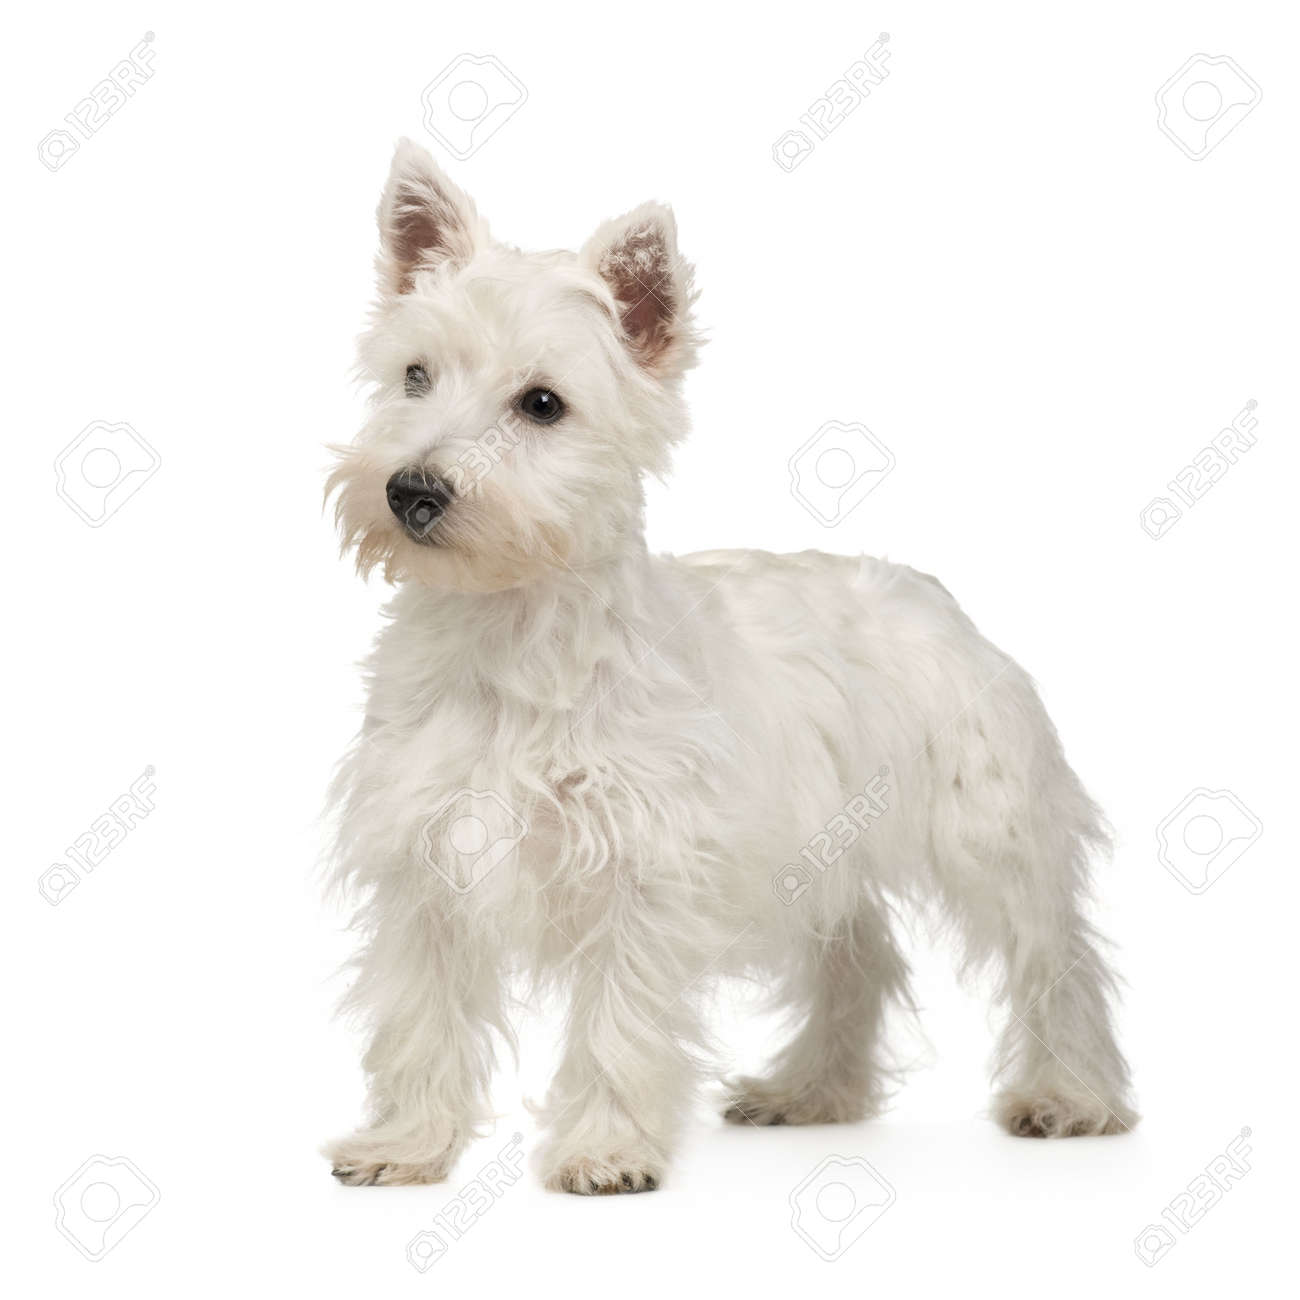 http://previews.123rf.com/images/isselee/isselee0807/isselee080700196/3356736-West-Highland-White-Terrier-5-months-in-front-of-a-white-background-Stock-Photo.jpg